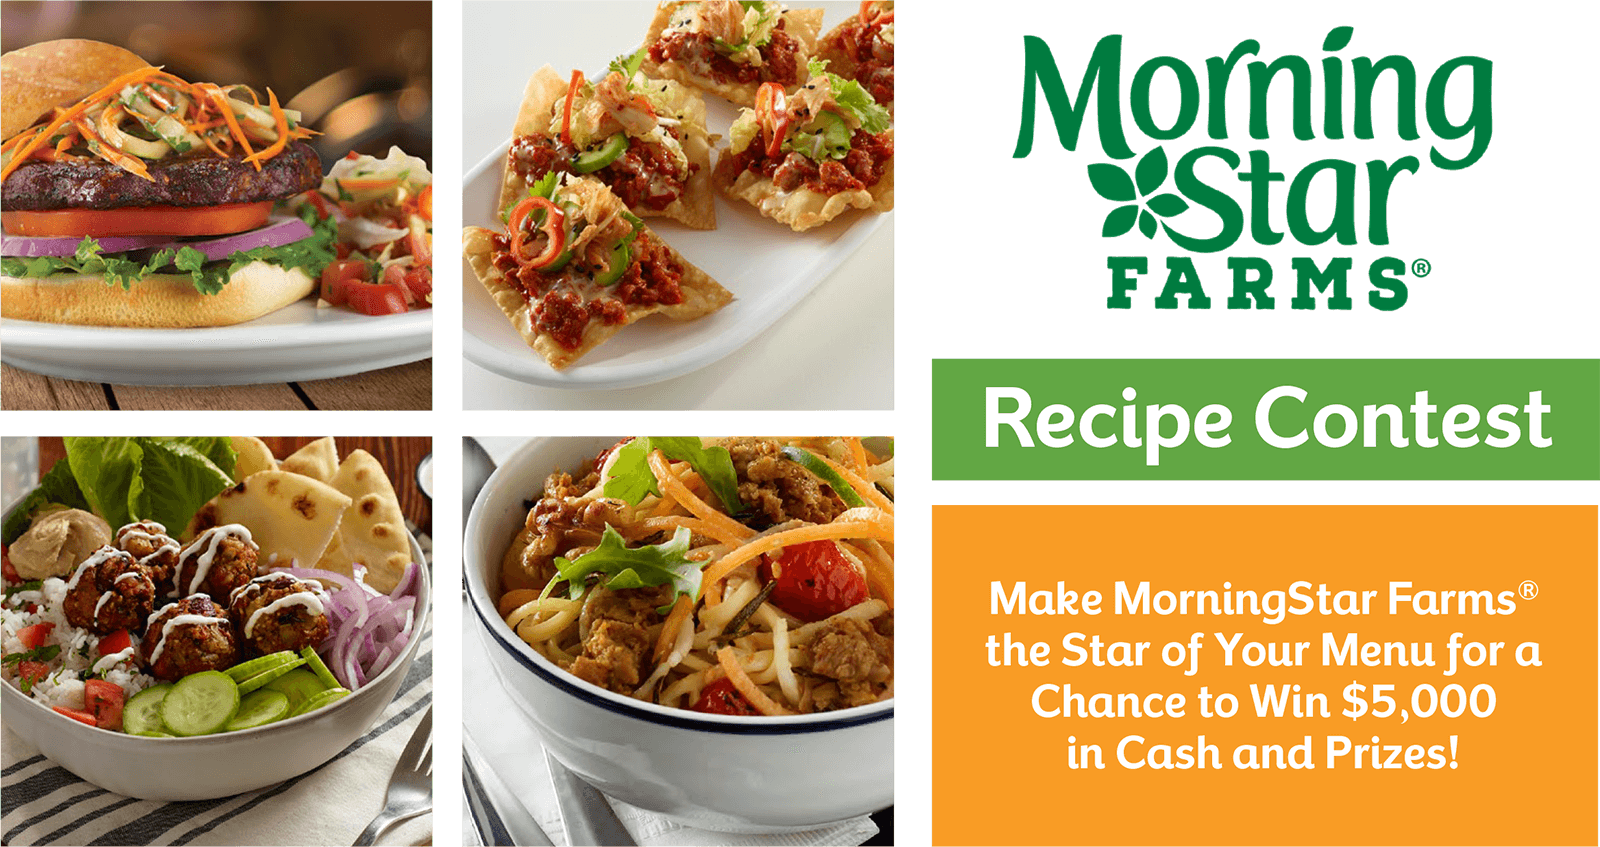 Make MorningStar Farms the star of your menu for a chance to win $5,000 in cash and prizes!